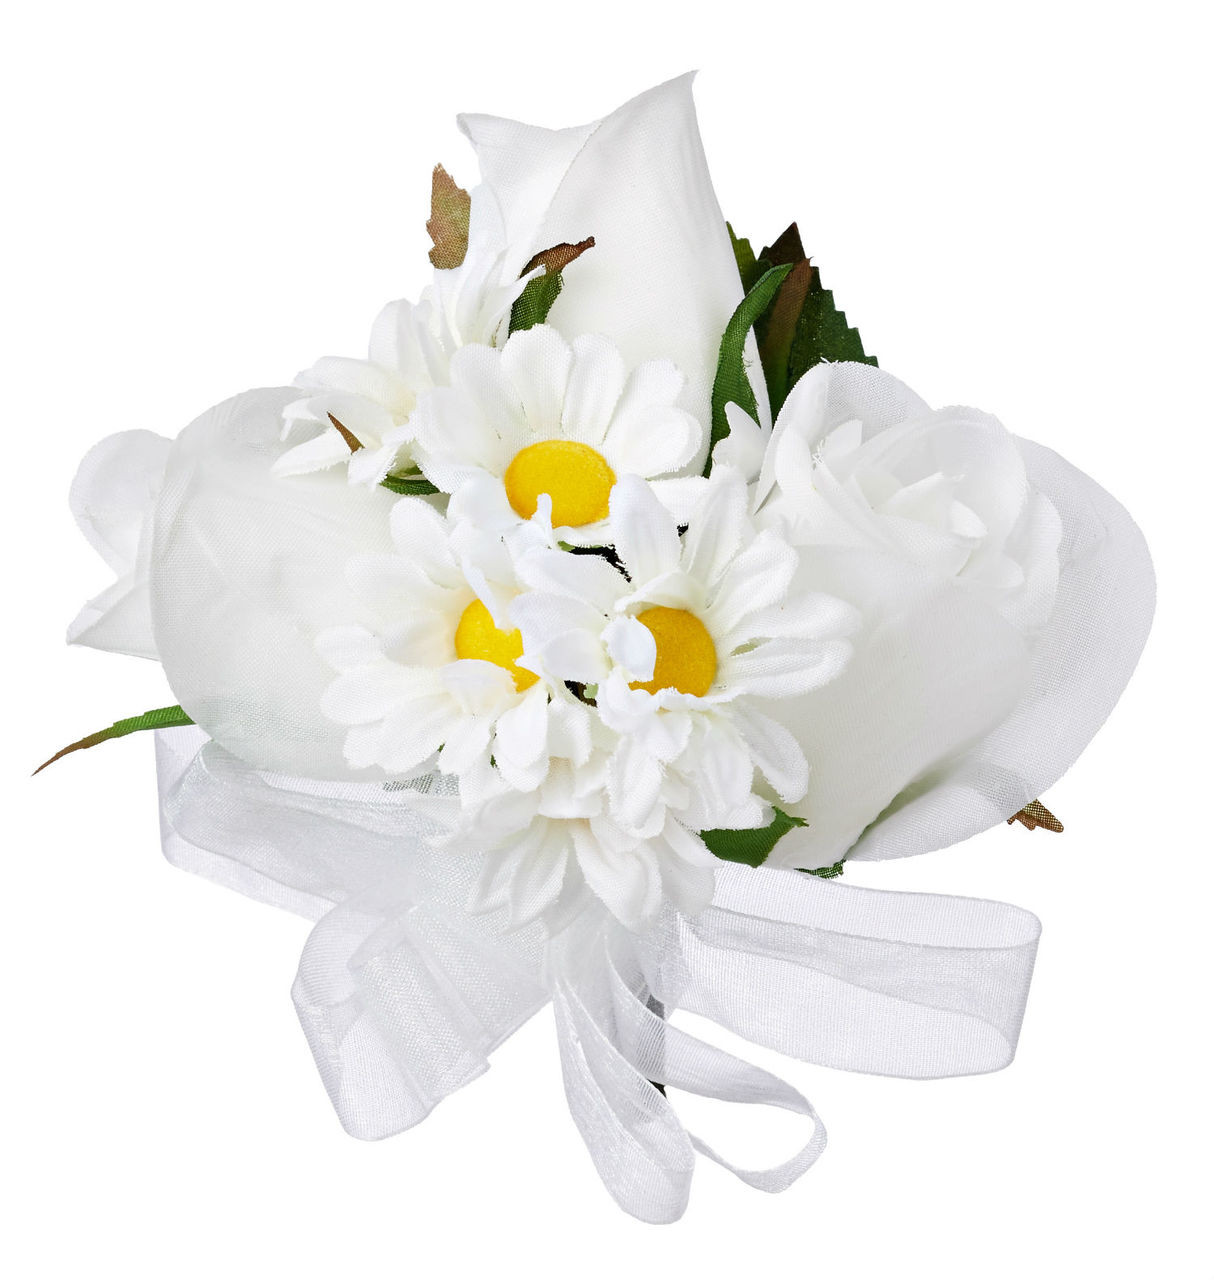 Wedding Flowers Corsage Ideas: Silk White Rose Wedding Corsage With Silk Daisies